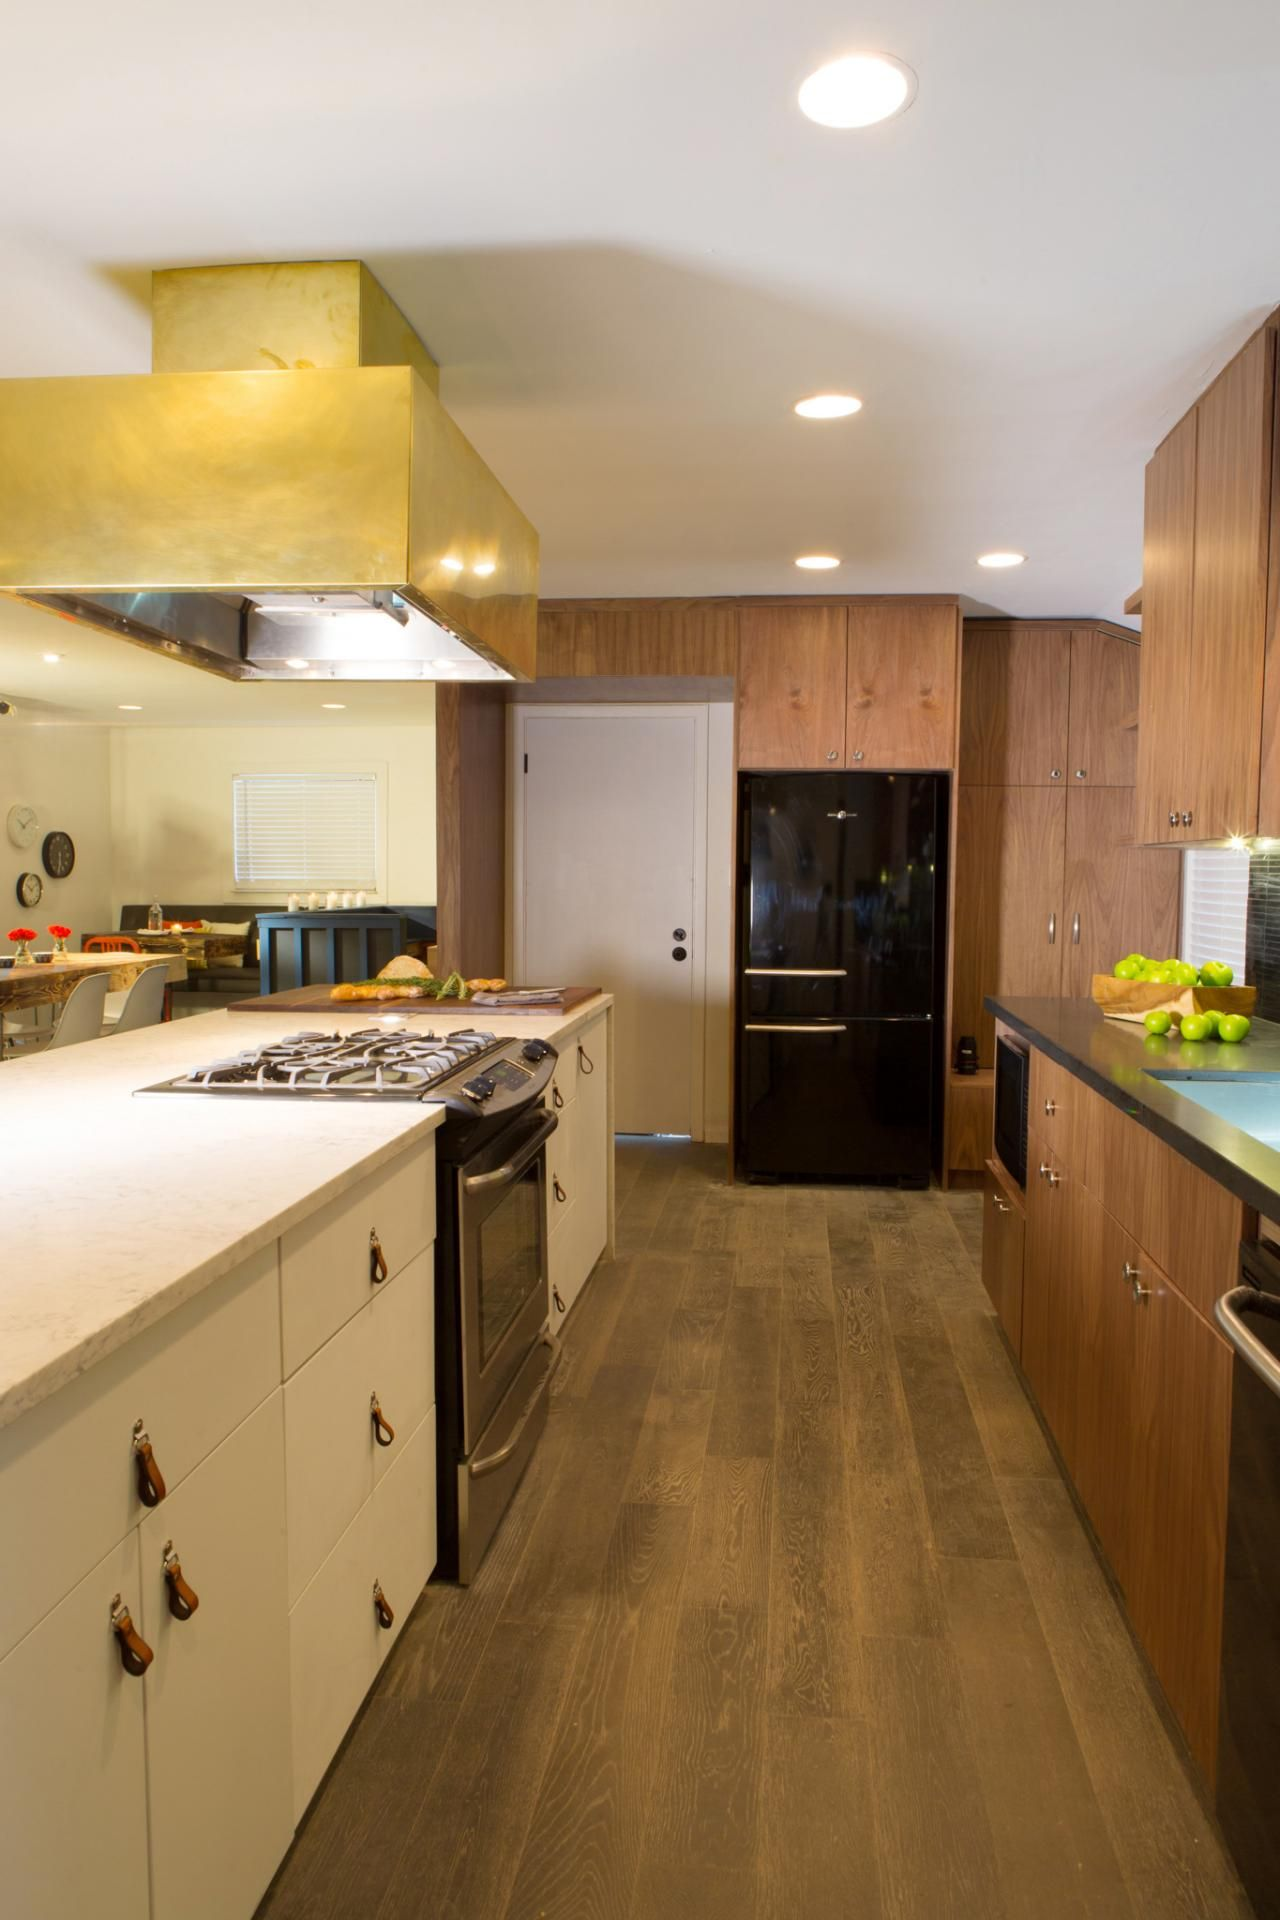 desperate kitchen makeover a bright and modern kitchen america s most desperate kitchens on kitchen makeover ideas id=63790